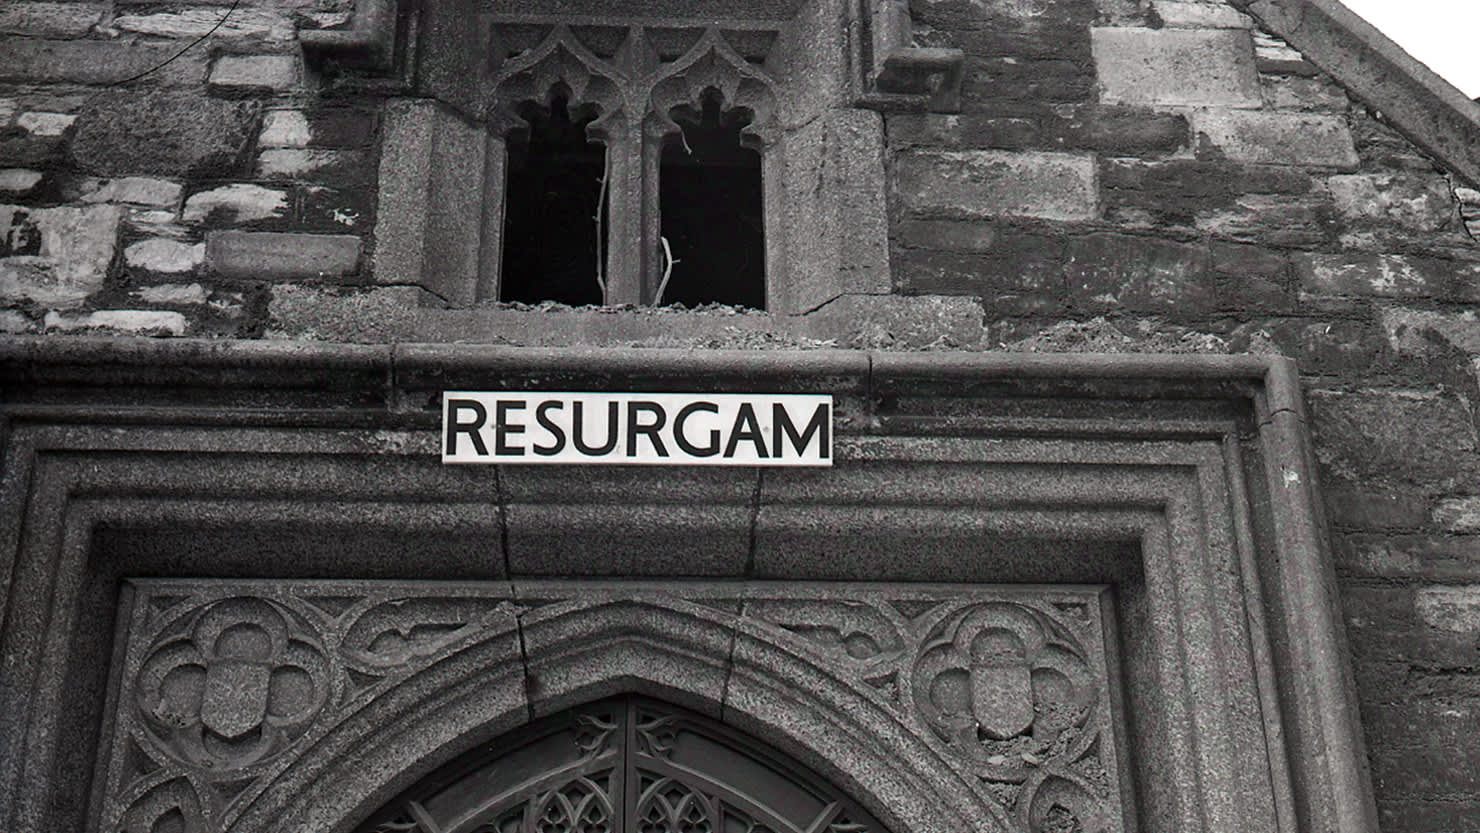 Resurgam sign on St Andrew's Church. Courtesy of The Box, Plymouth